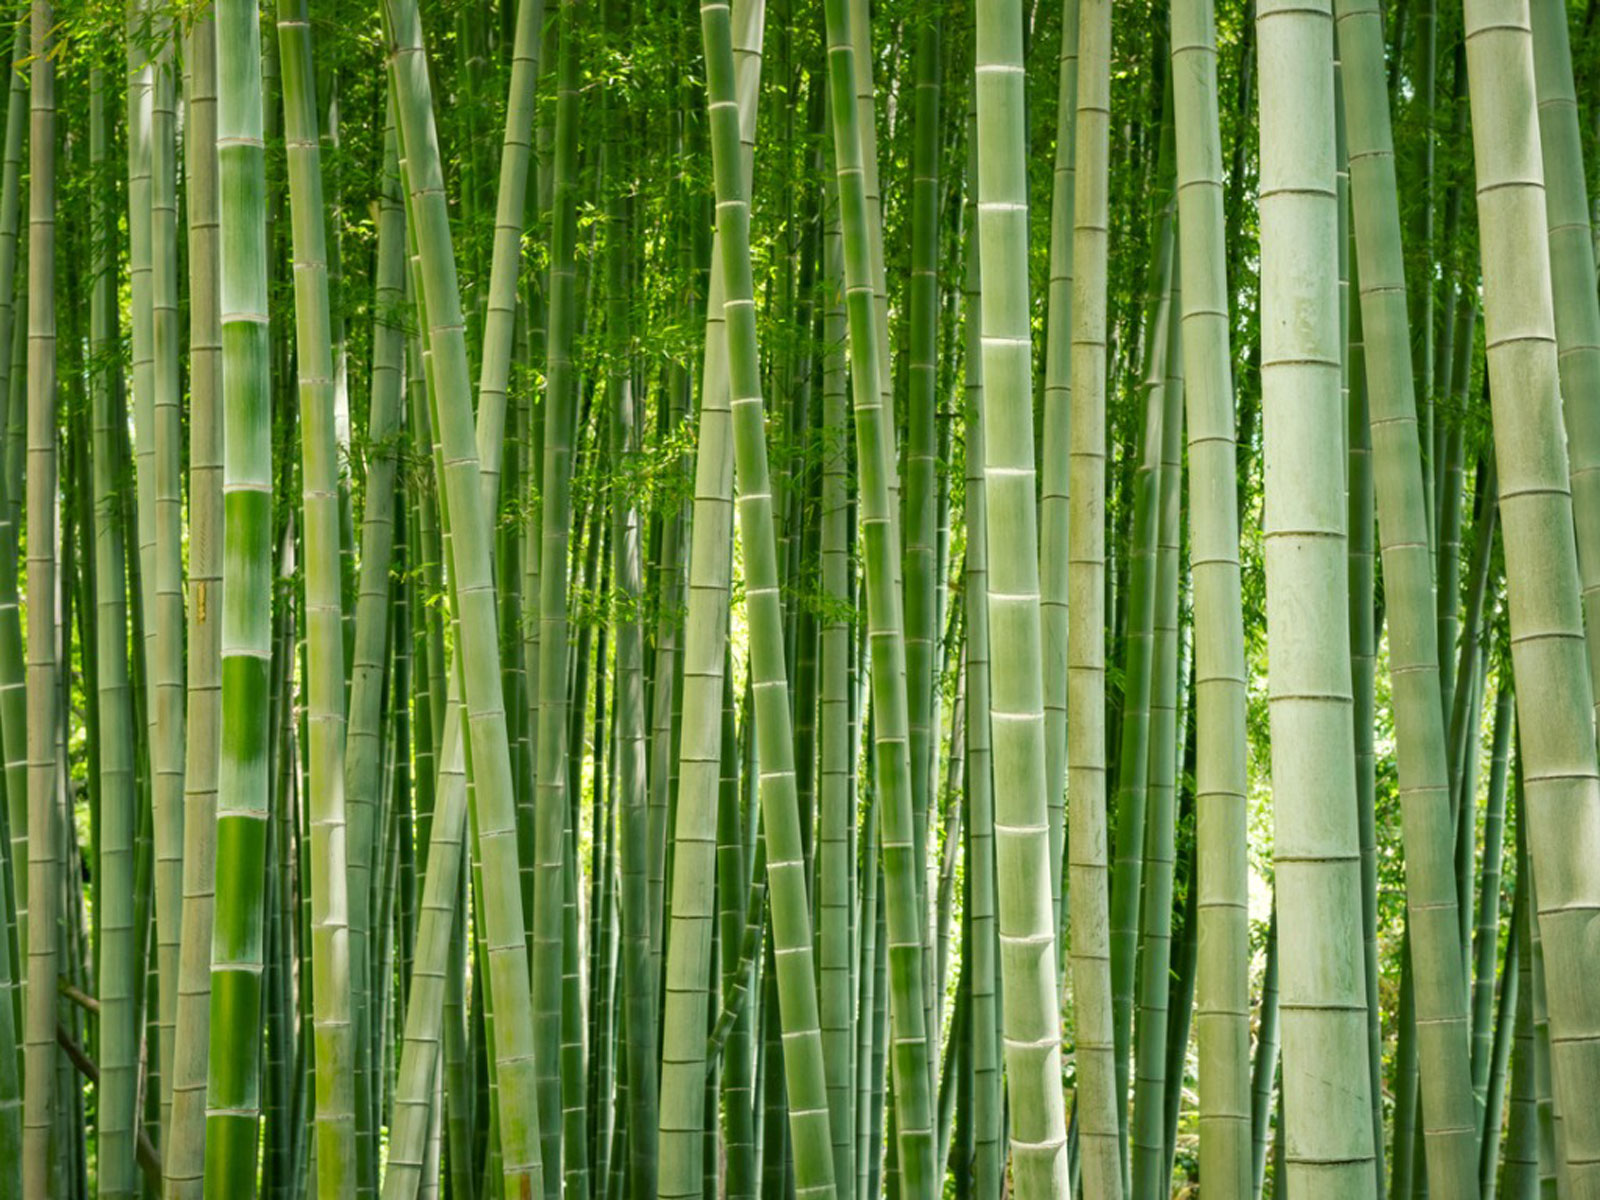 Bamboo Control How To Get Rid Of Bamboo